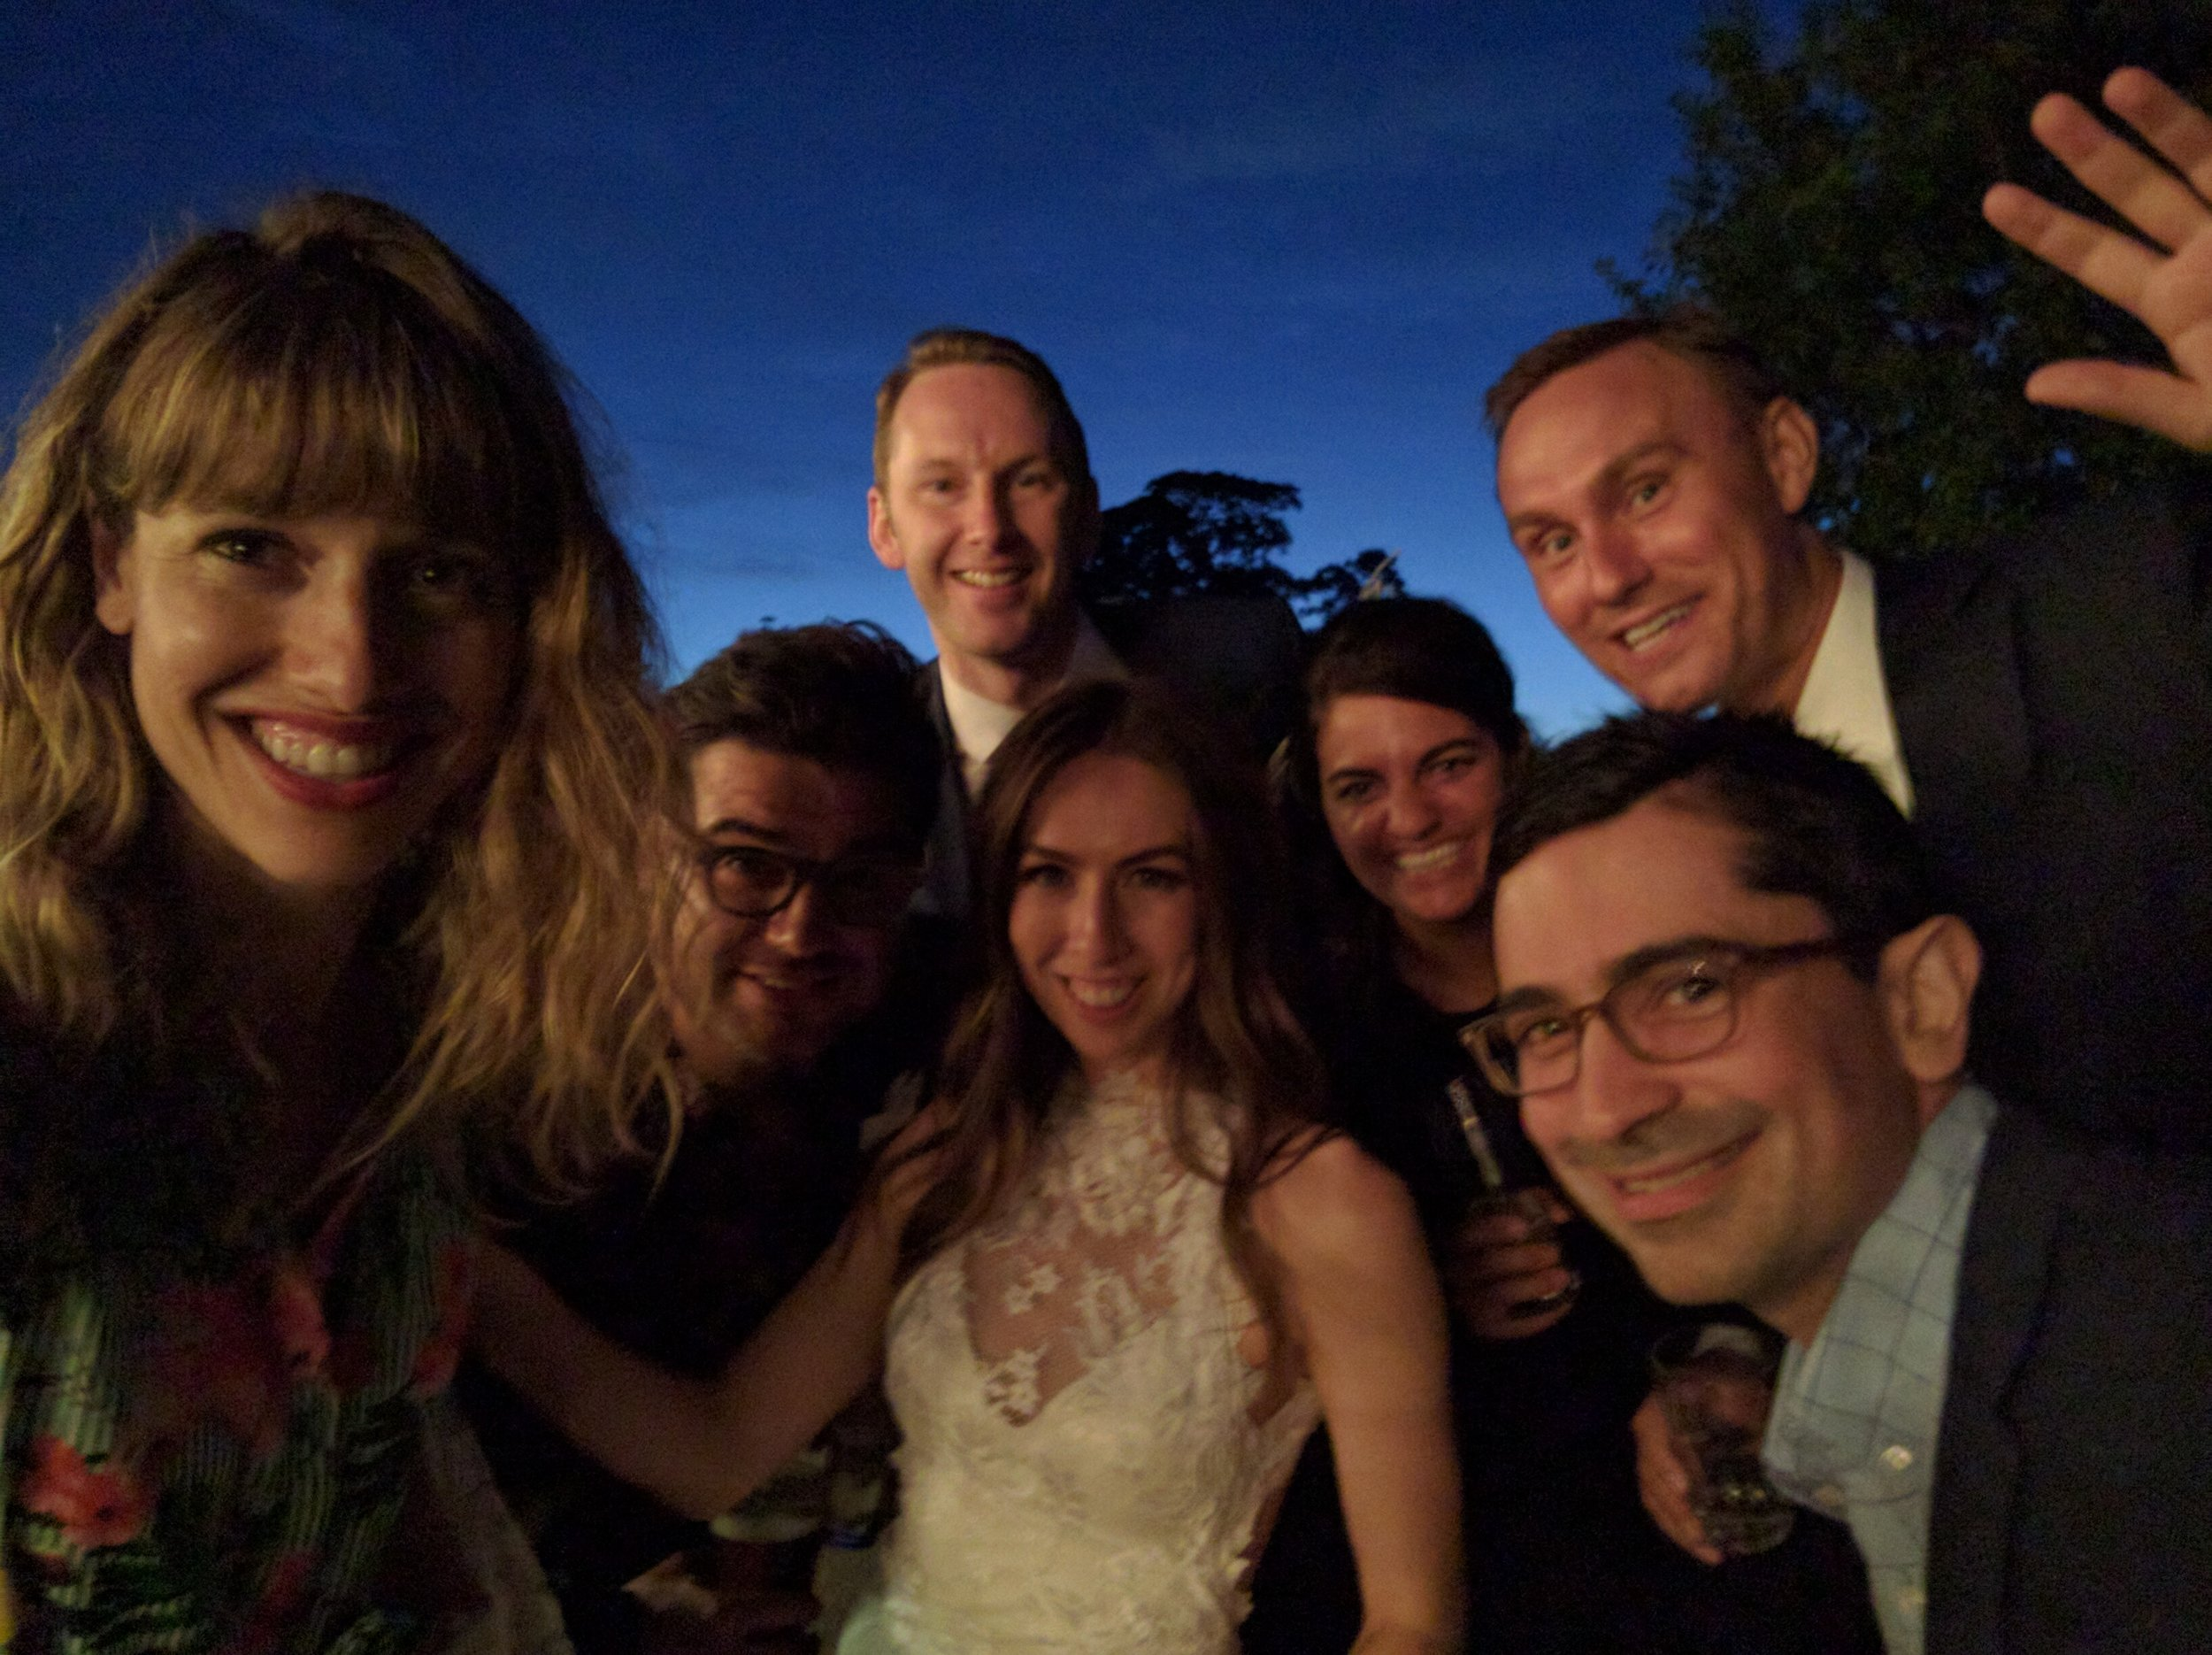 Wedding selfie! Nicole and Matteo, the bride and groom, Nicole and I, and Serban (who got to sleep inside the George and Dragon that night)